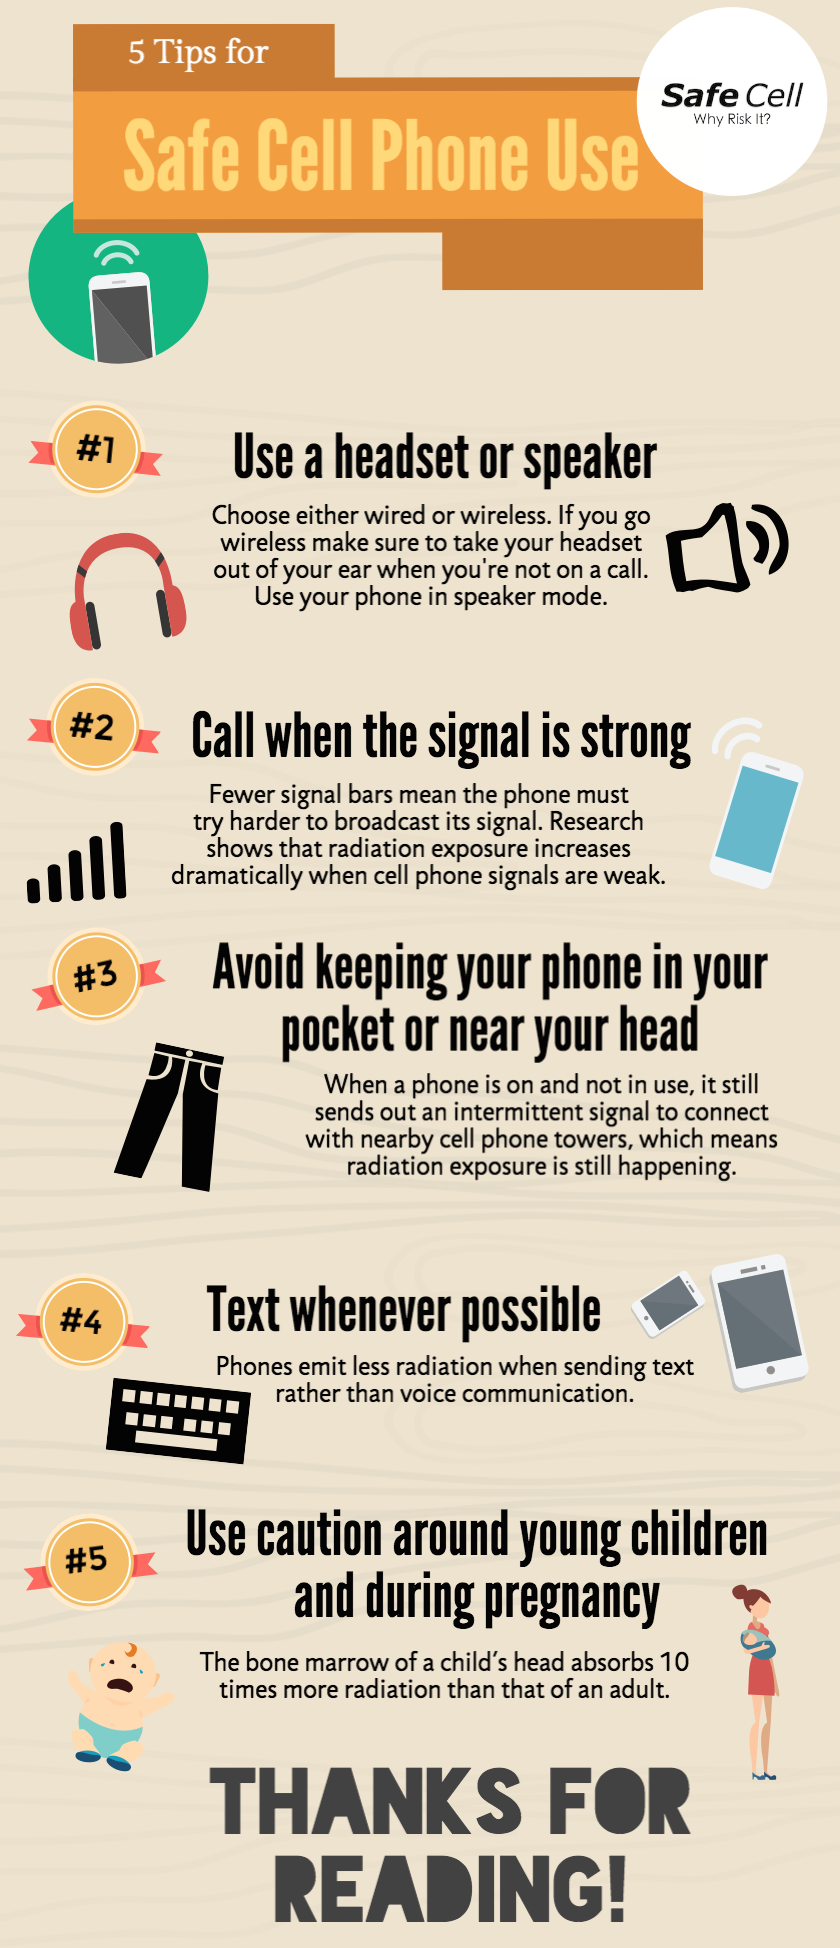 5 Tips for Safe Cell Phone Use